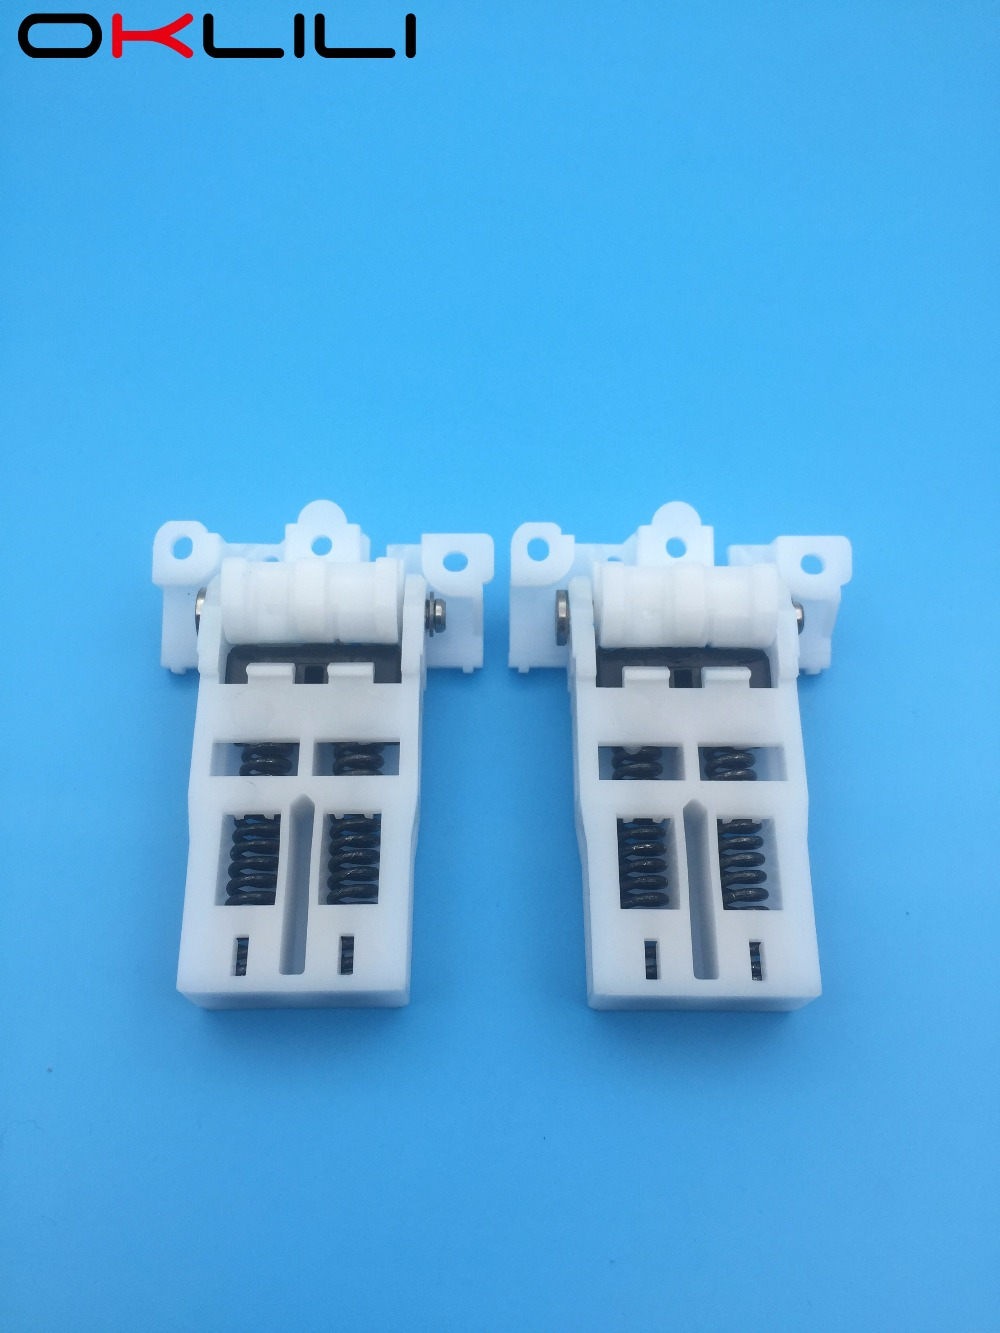 2X ORIGINAL 003N01018 003N01051 ADF Hinge Unit for Xerox 3210 3220 3300 3320 3635 6110 PE120 PE16 for Ricoh AC104 AC205 SP 3200 upper fuser roller gear for xerox 3200 3210 3220 3140 3125 3421 for dell 1130 1133 1135 220 221 220s 221s 2210 2220 jc66 01254a